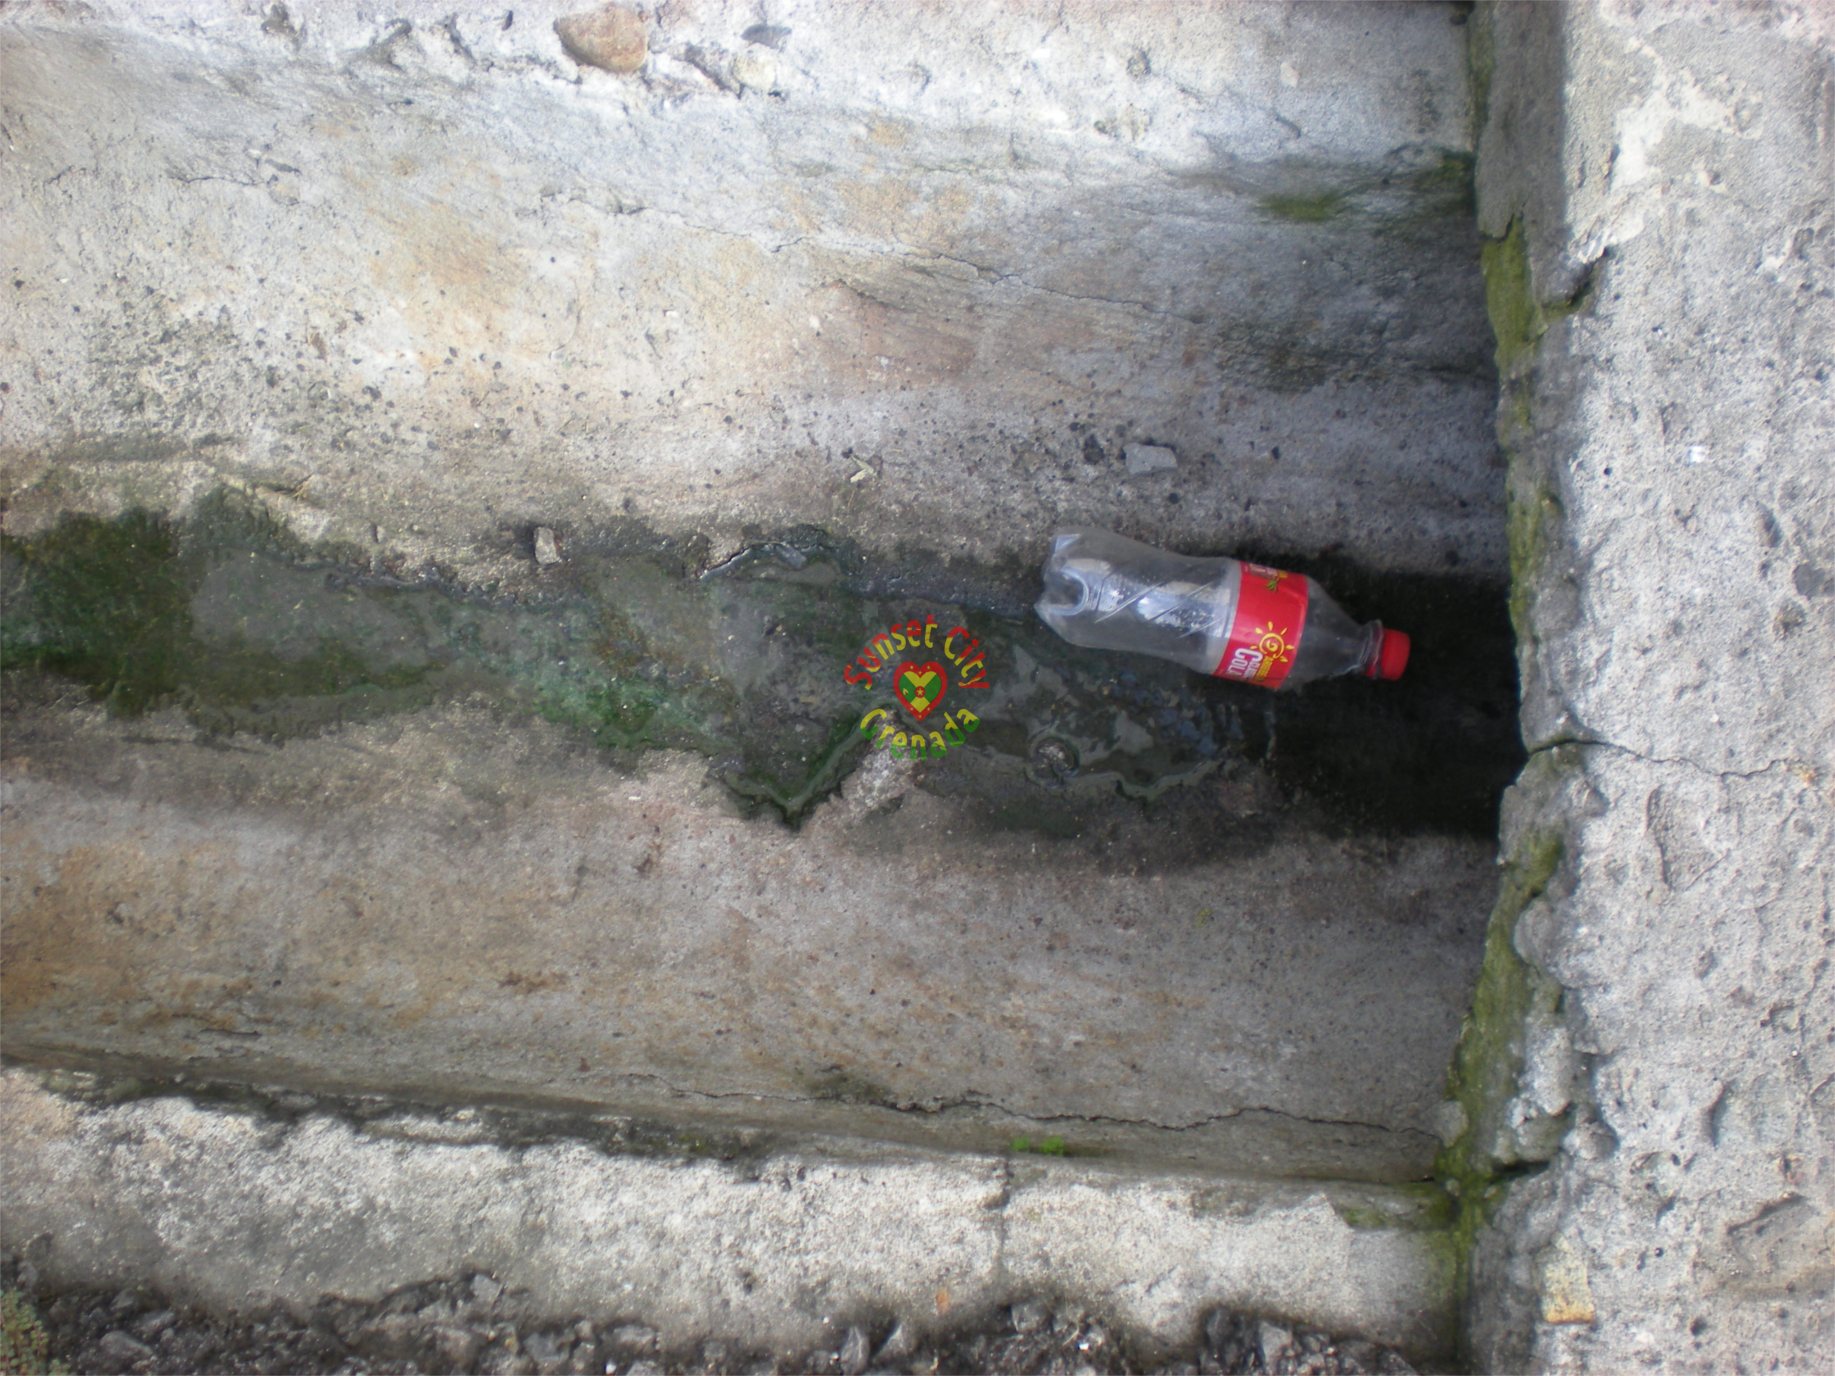 Empty coke bottle dumped in the drain on a backstreet